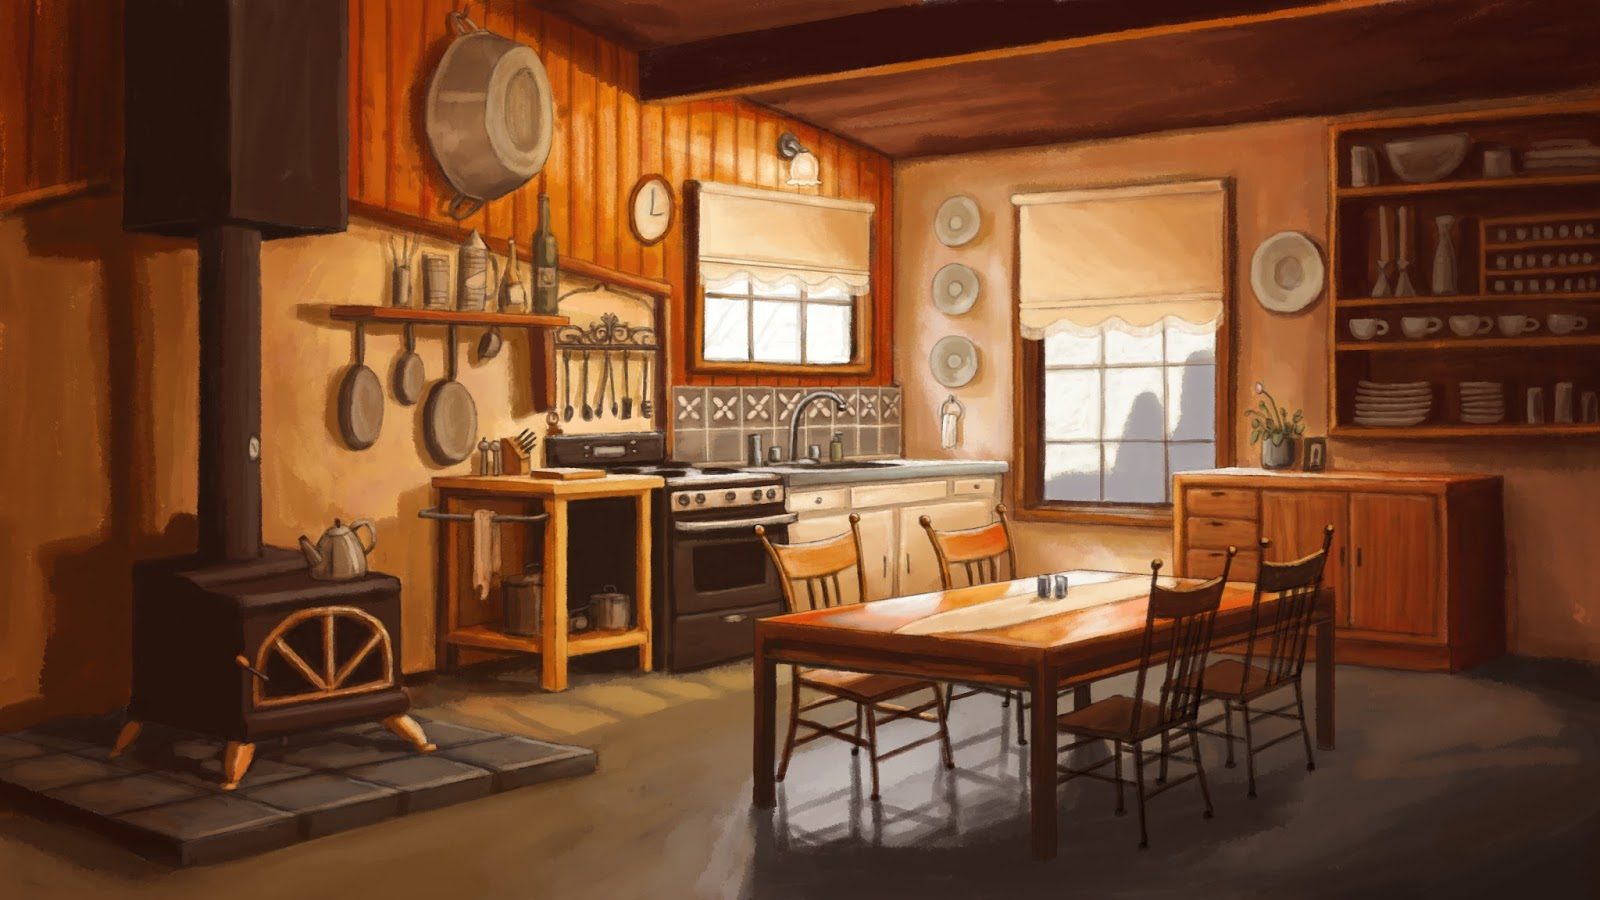 Andrea Gerstmann Art: Kitchen Scene Final